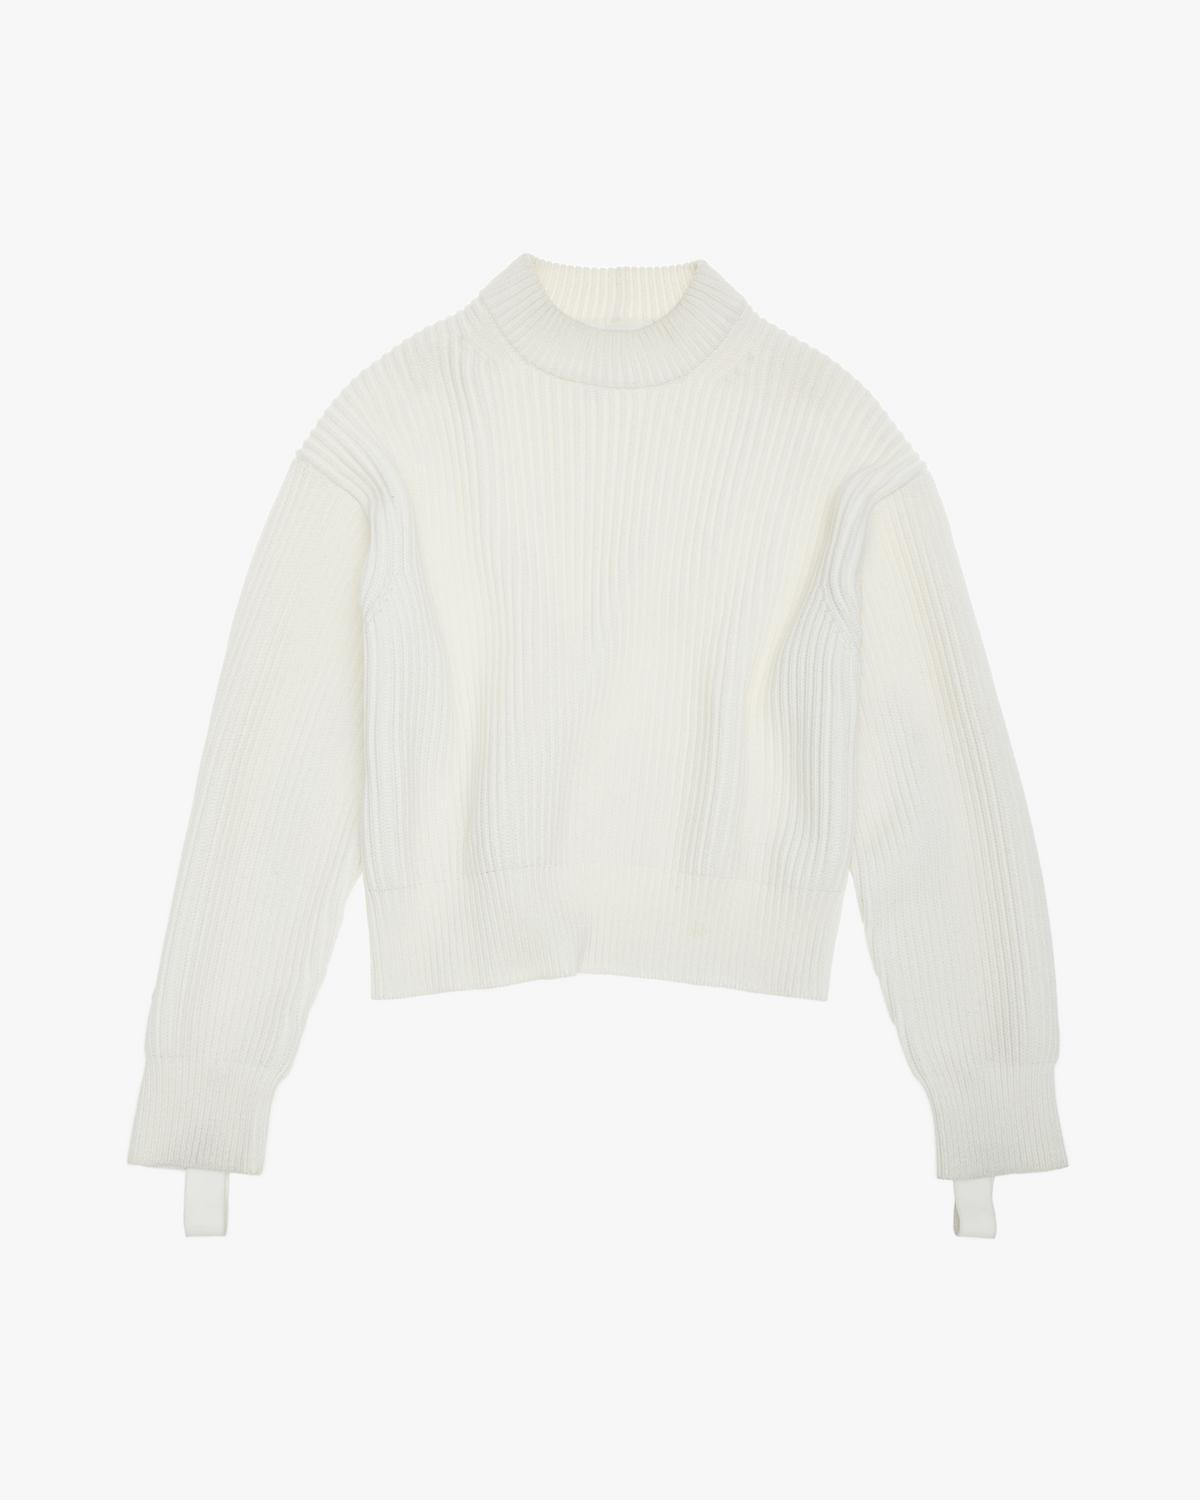 WOOL COTTON CREWNECK